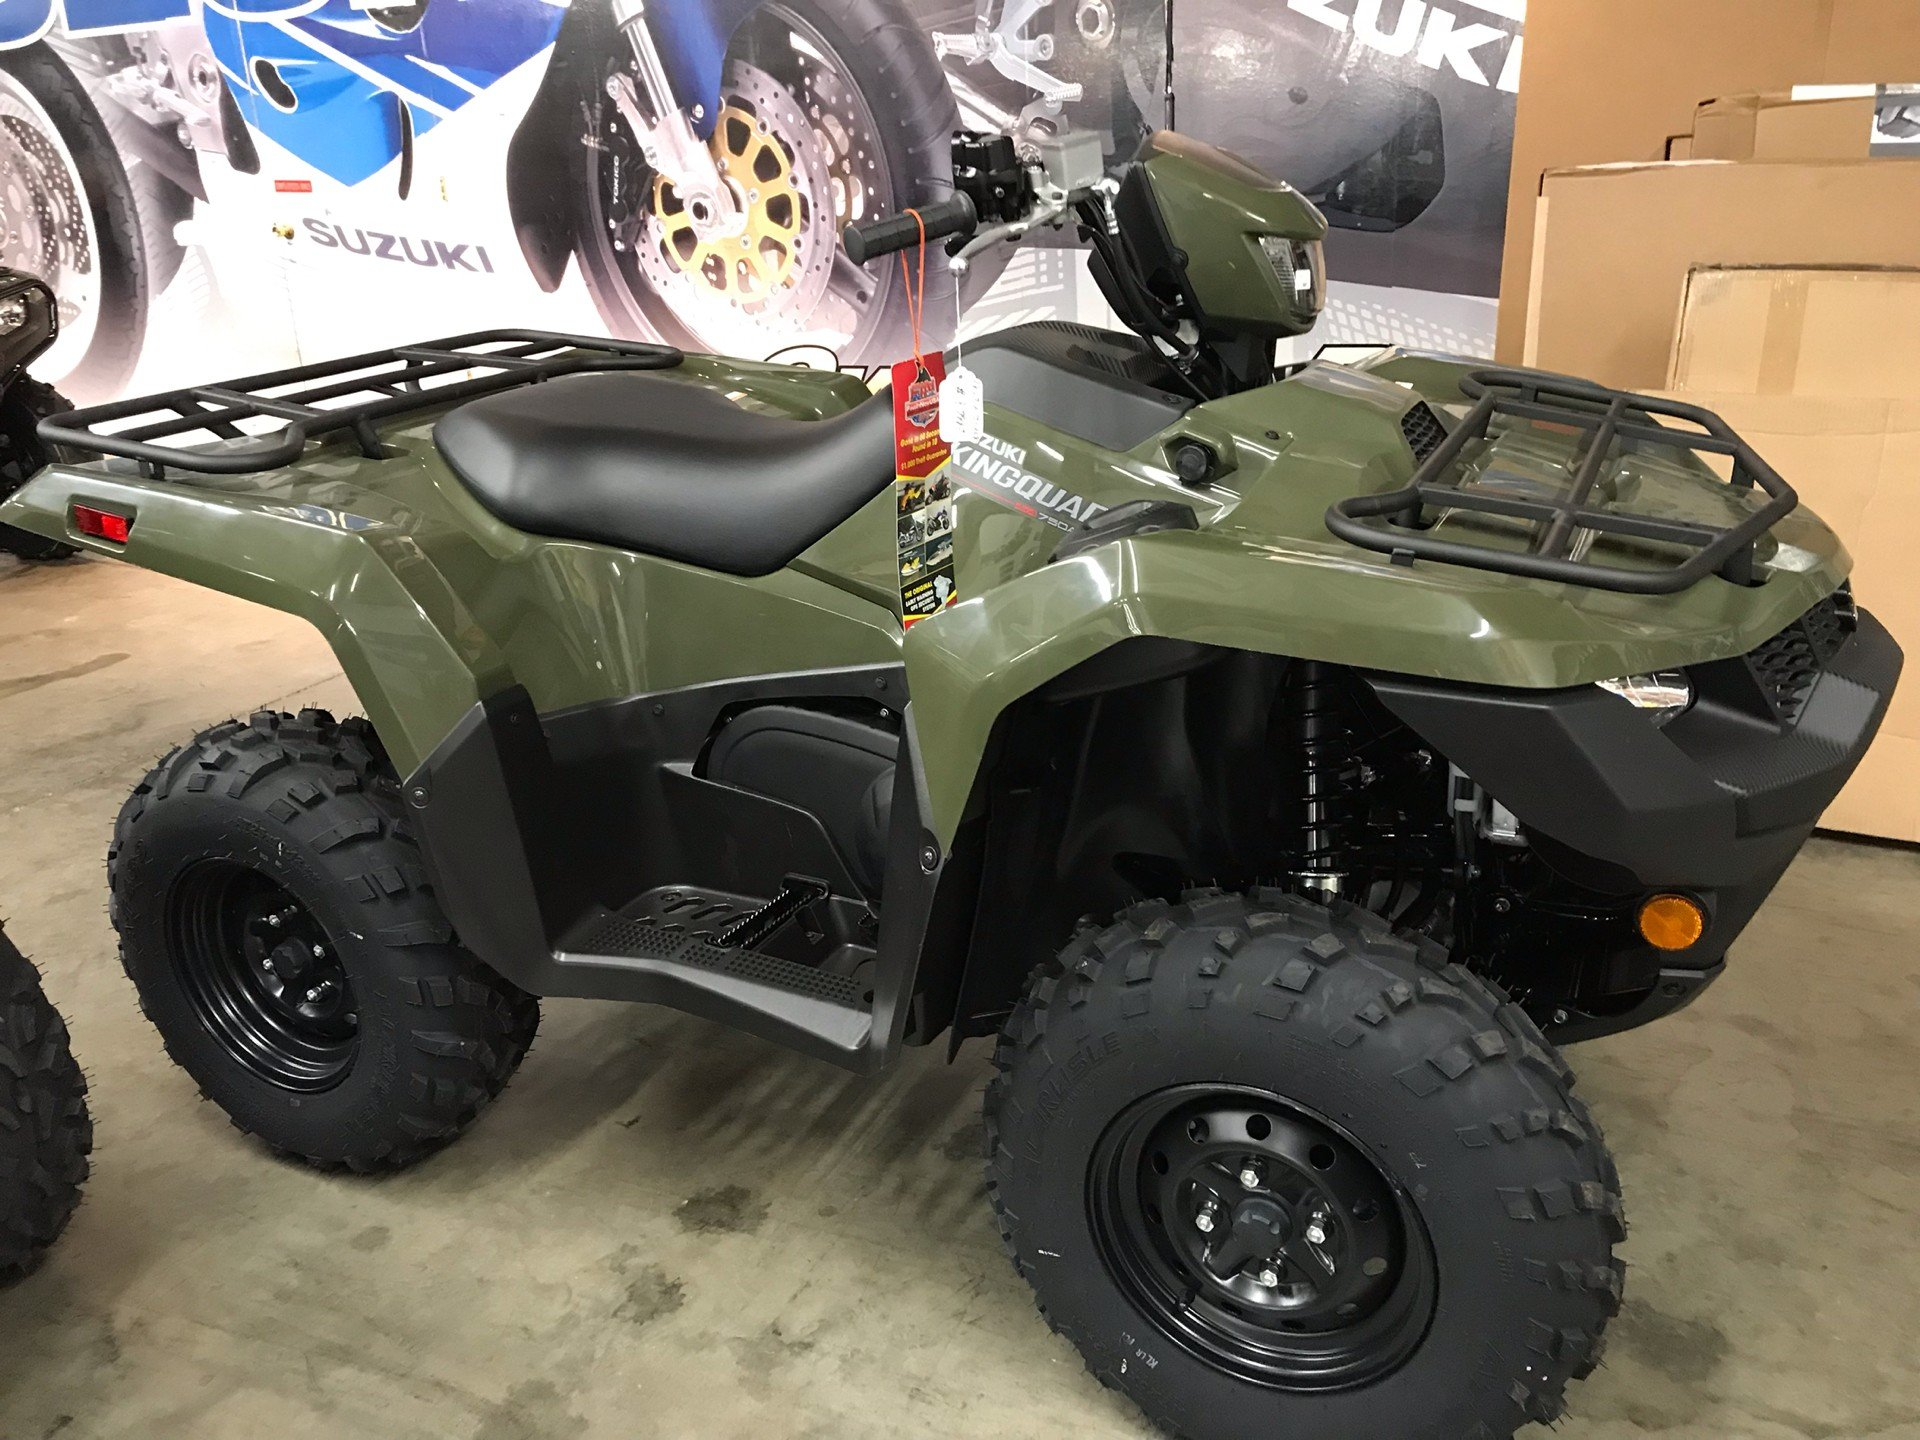 2019 Suzuki KingQuad 750AXi in Sanford, North Carolina - Photo 6